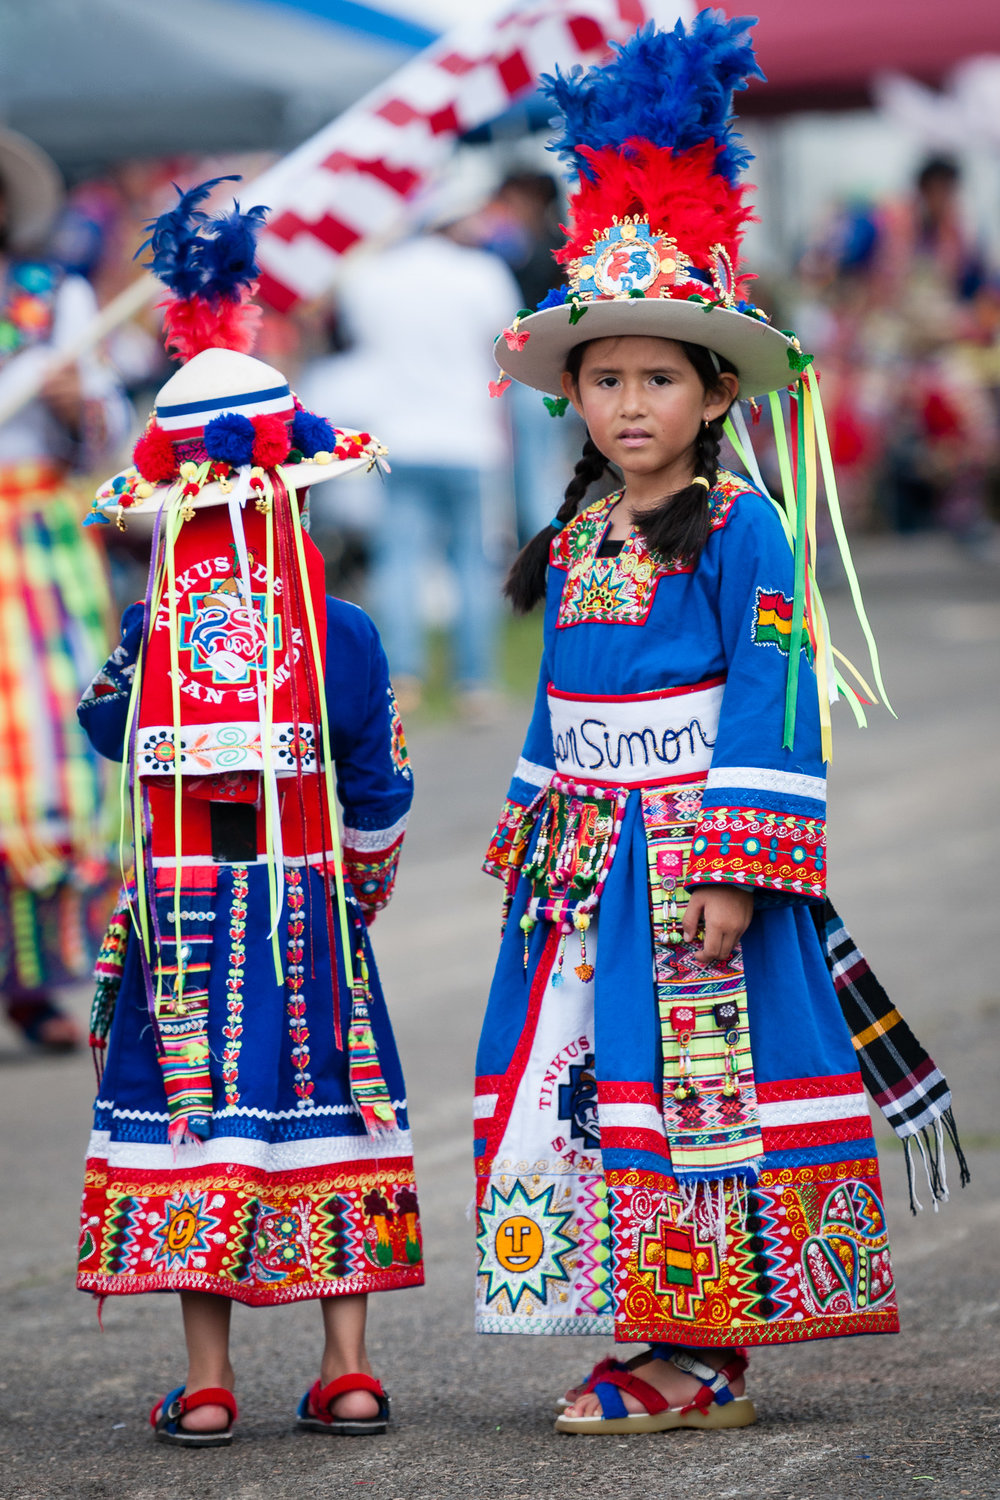 I love this photograph of two young performers with Tinkus de San Simon USA, who performed a Tinkus dance. One performer is looking down the route they would take towards me, and the other is looking back towards the rest of their group.